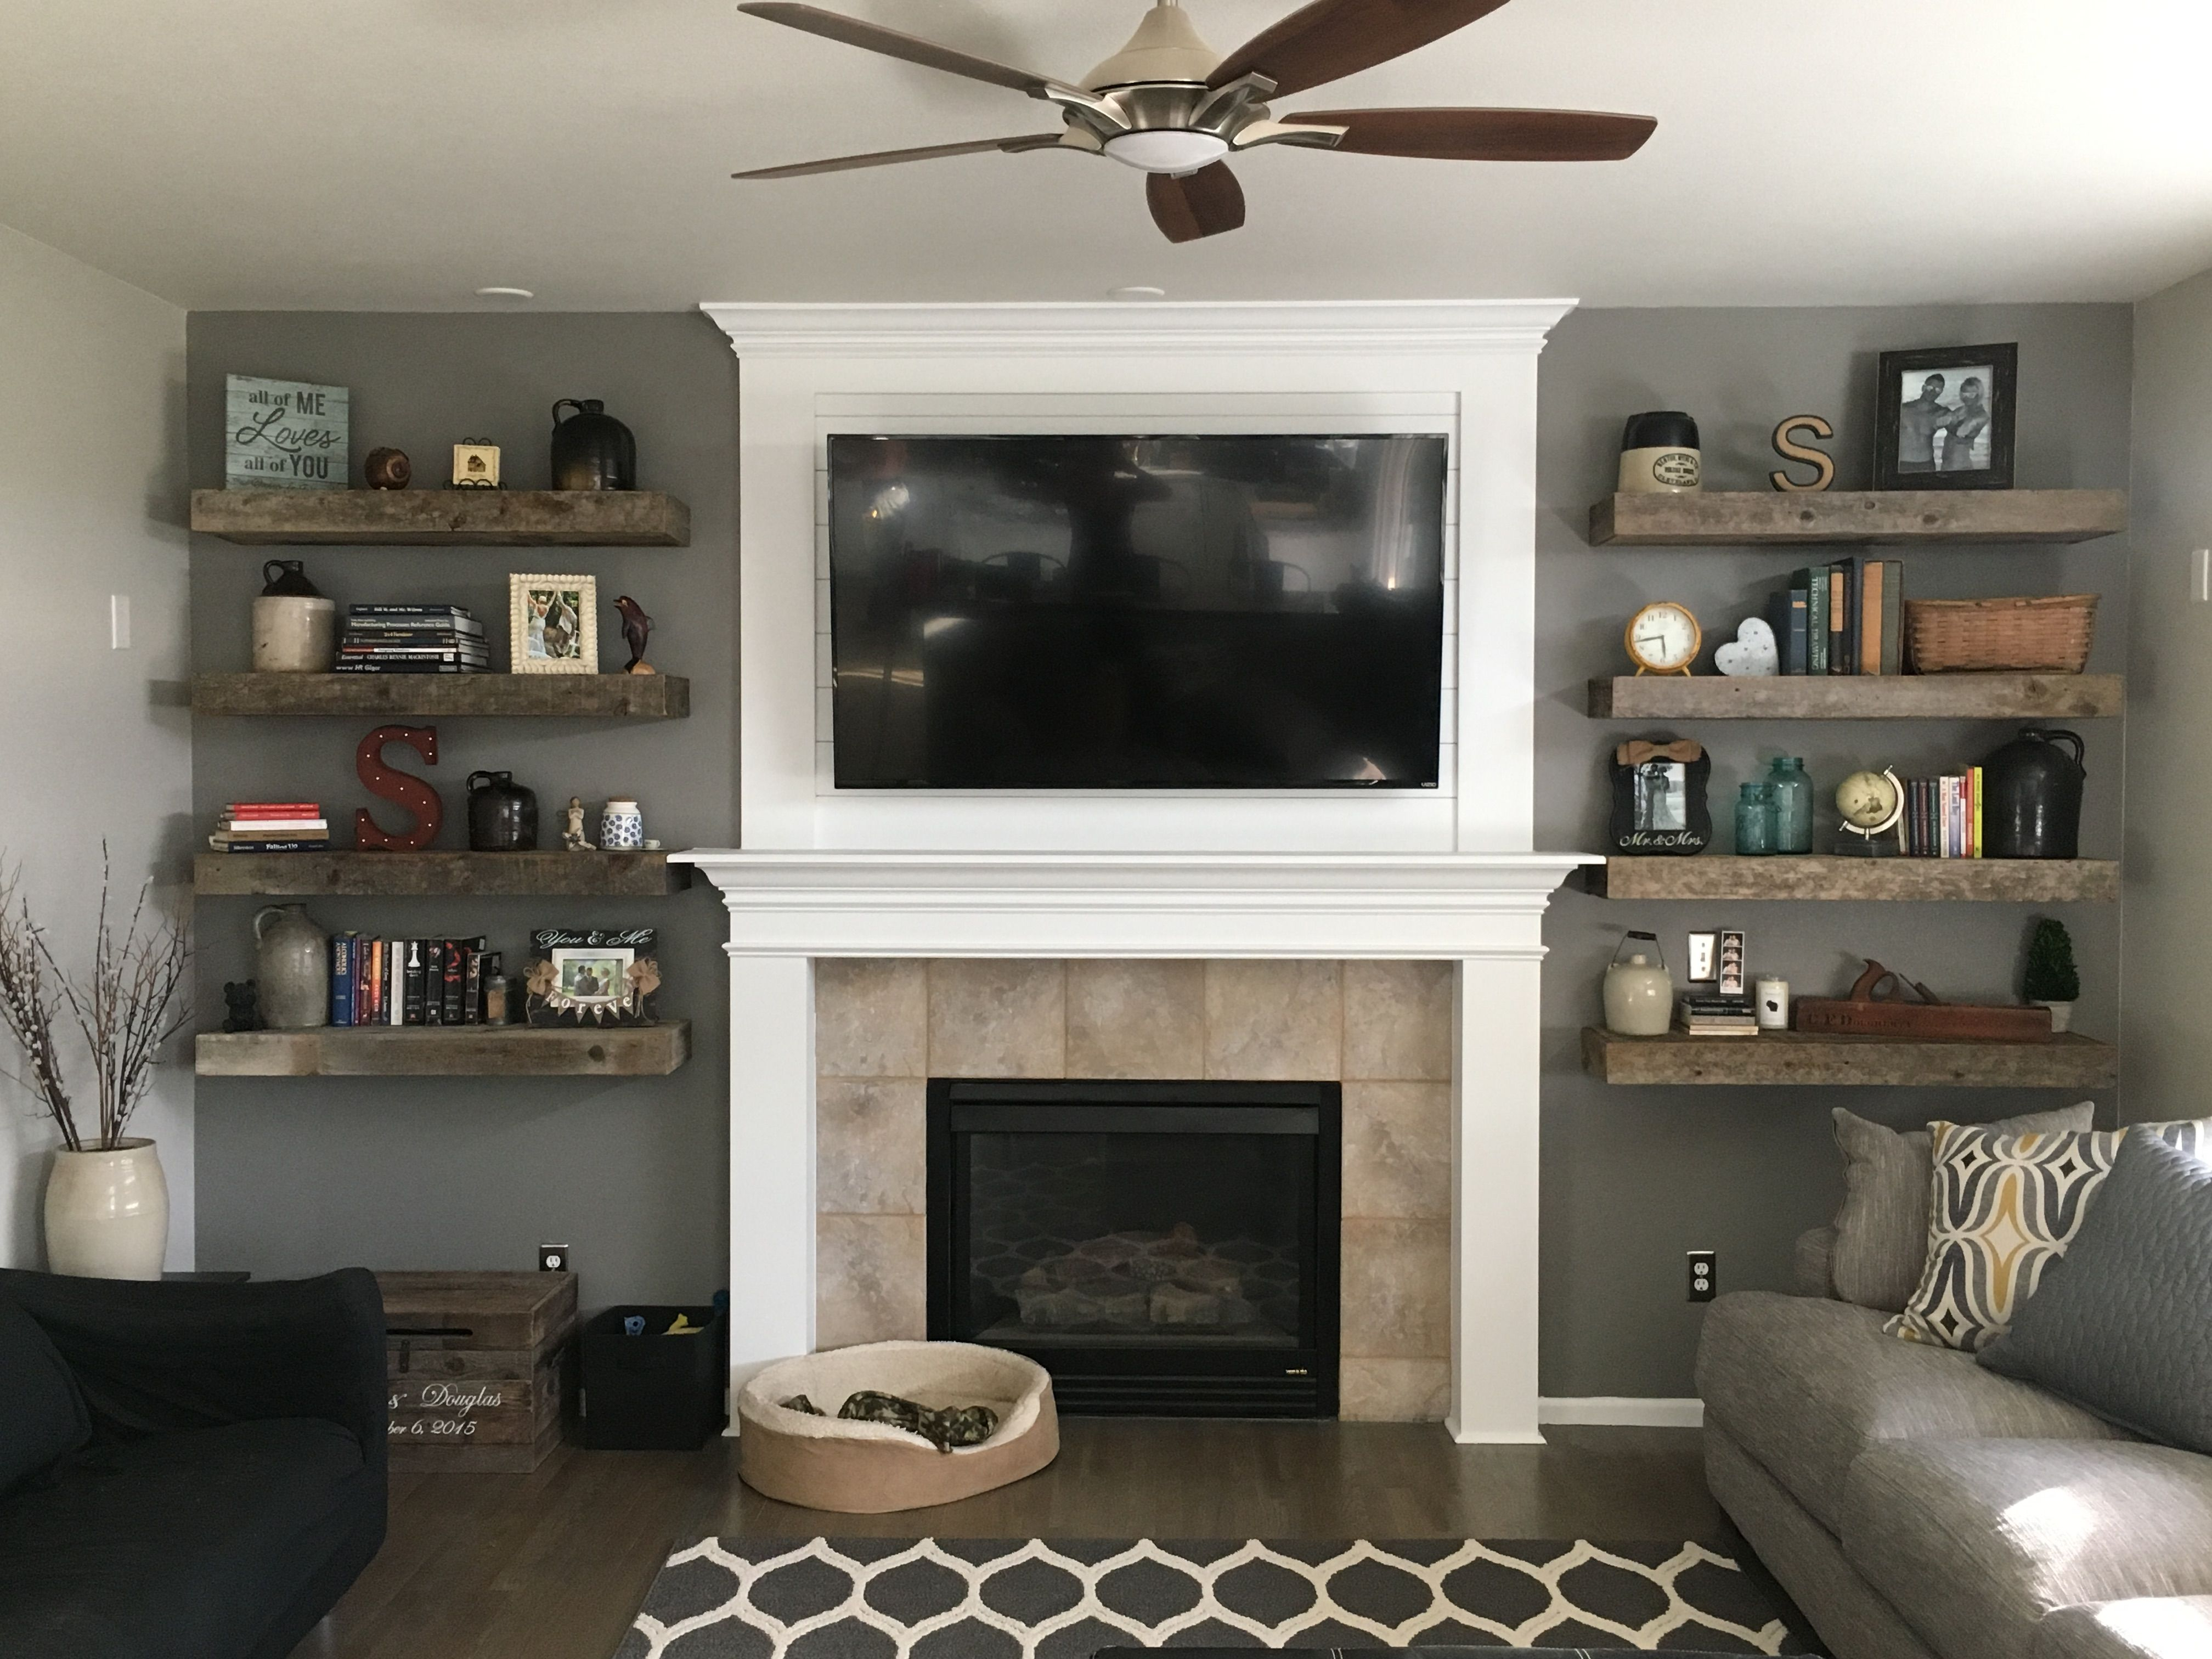 rustic living room barnwood floating shelves shiplap fireplace shelf over books and decor home sweet husband did the cherry kitchen island with seating bookcase desk diy solid